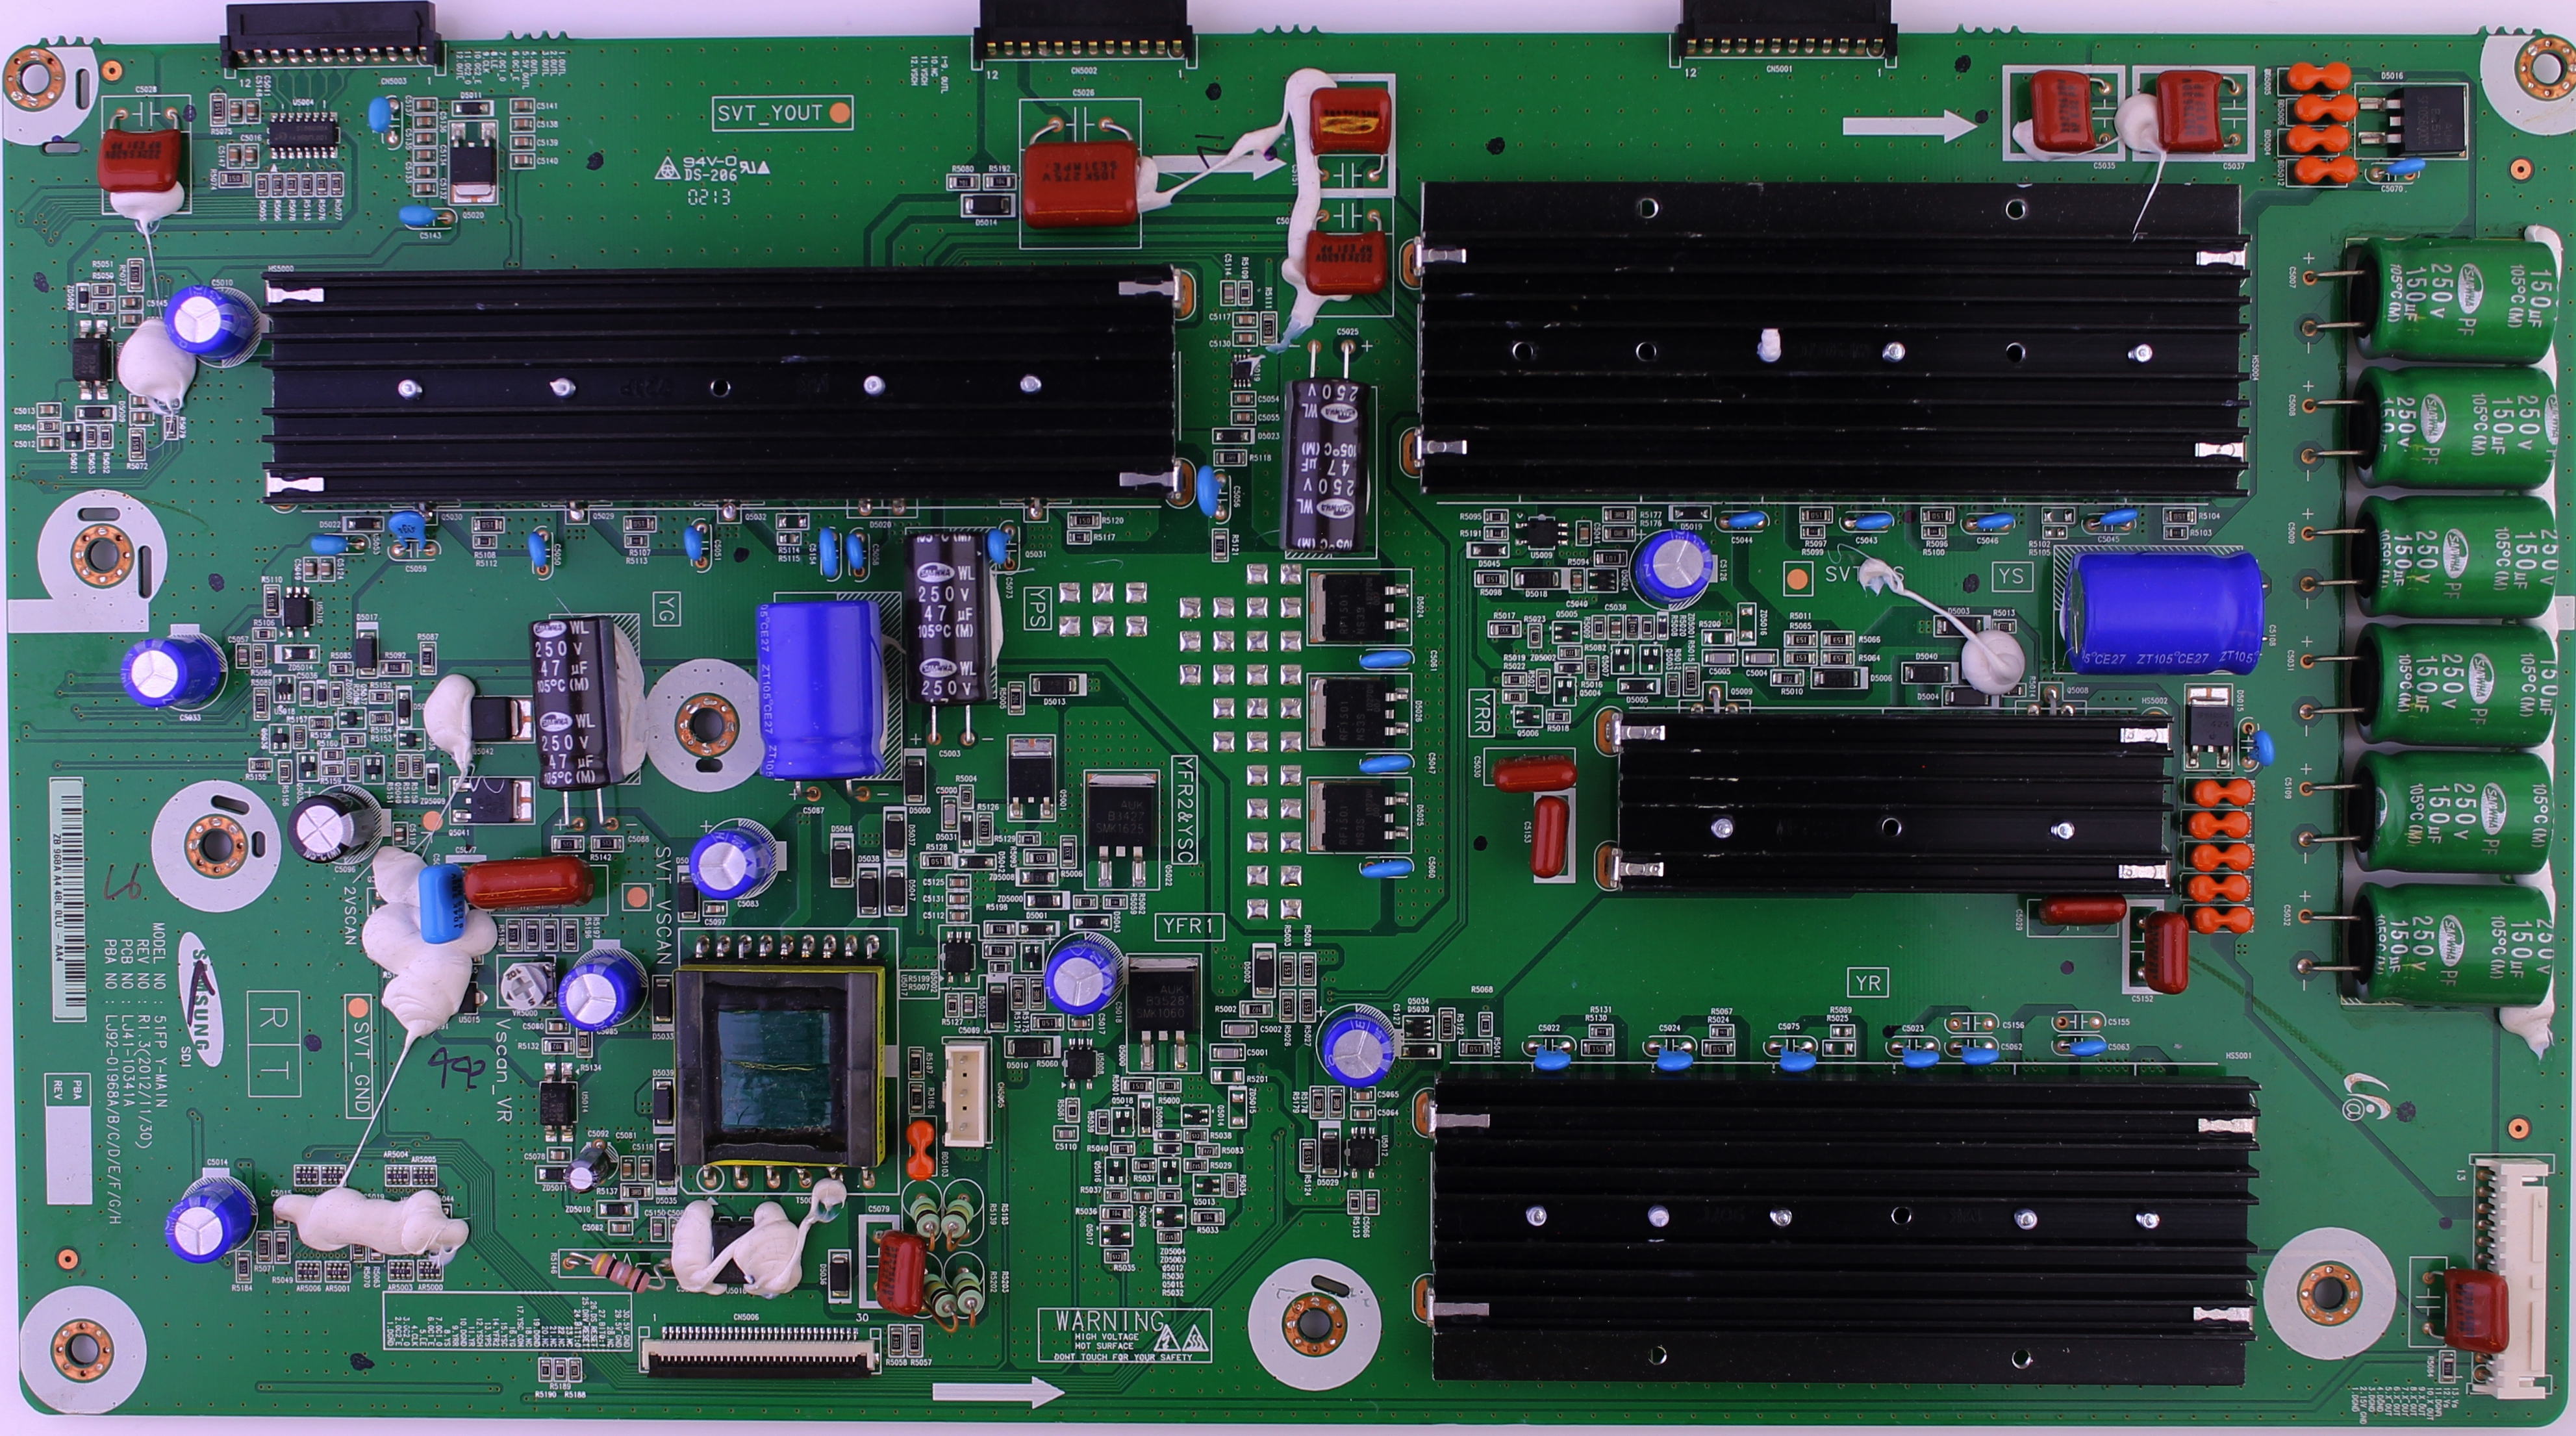 LJ92-01968A Samsung sustain board for TV model PN51F8500AFXZA